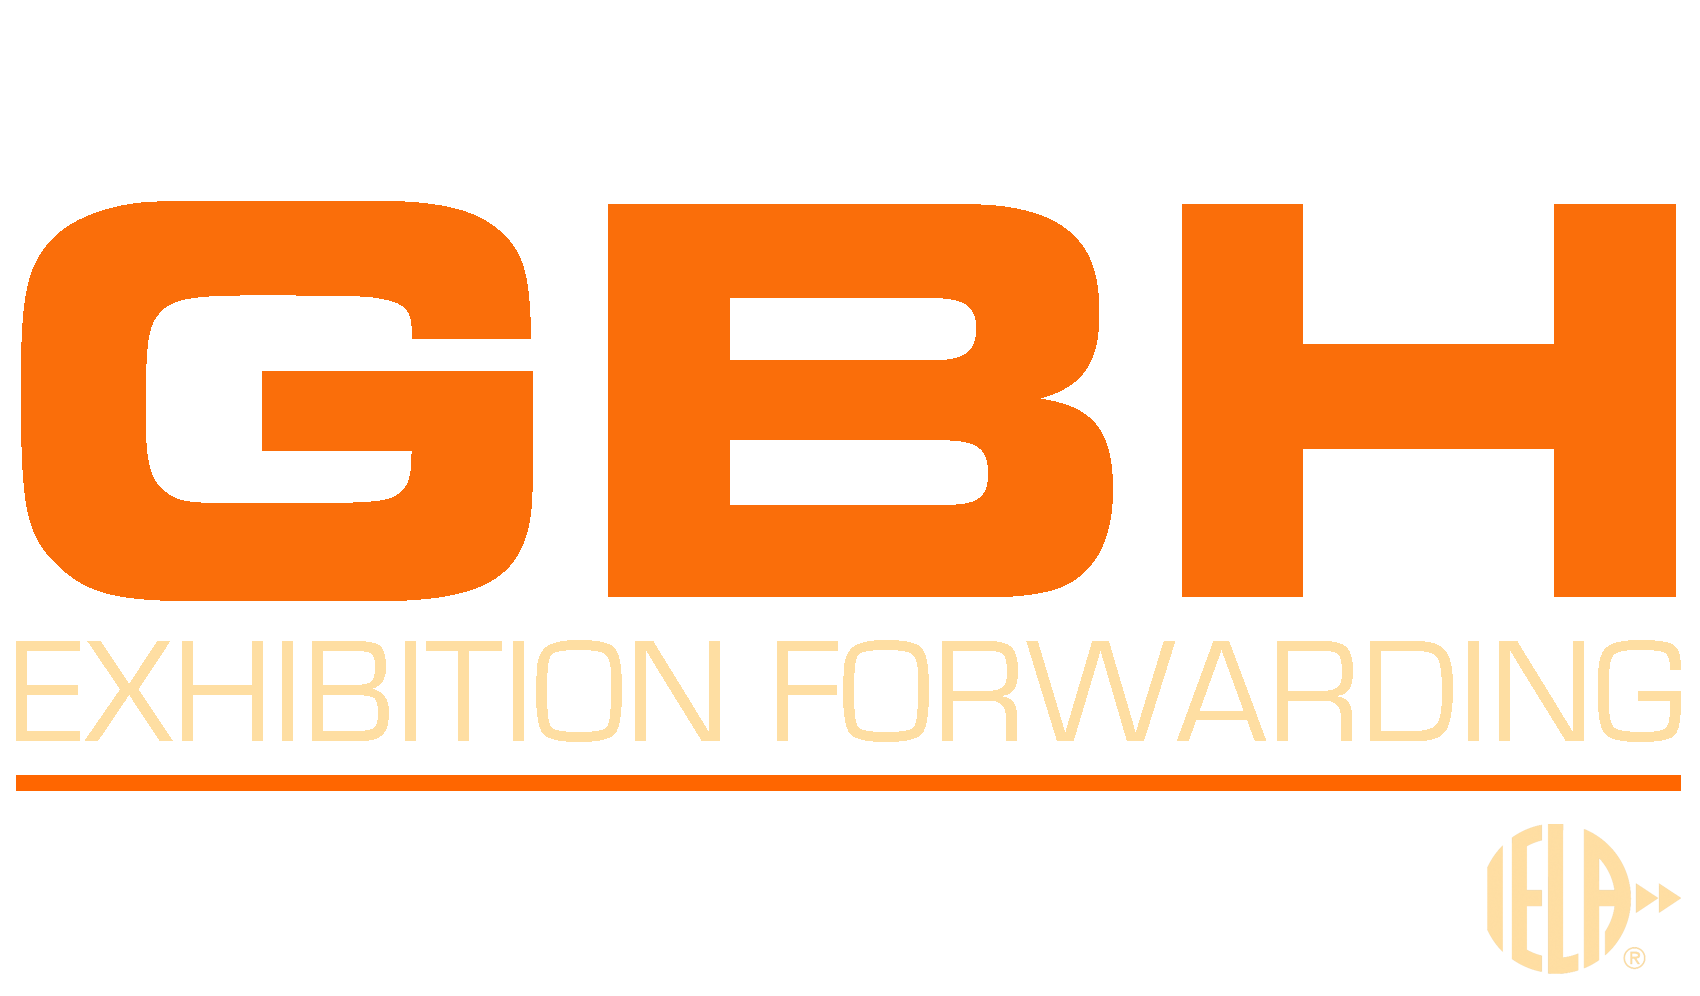 GBH Exhibition Forwarding Ltd